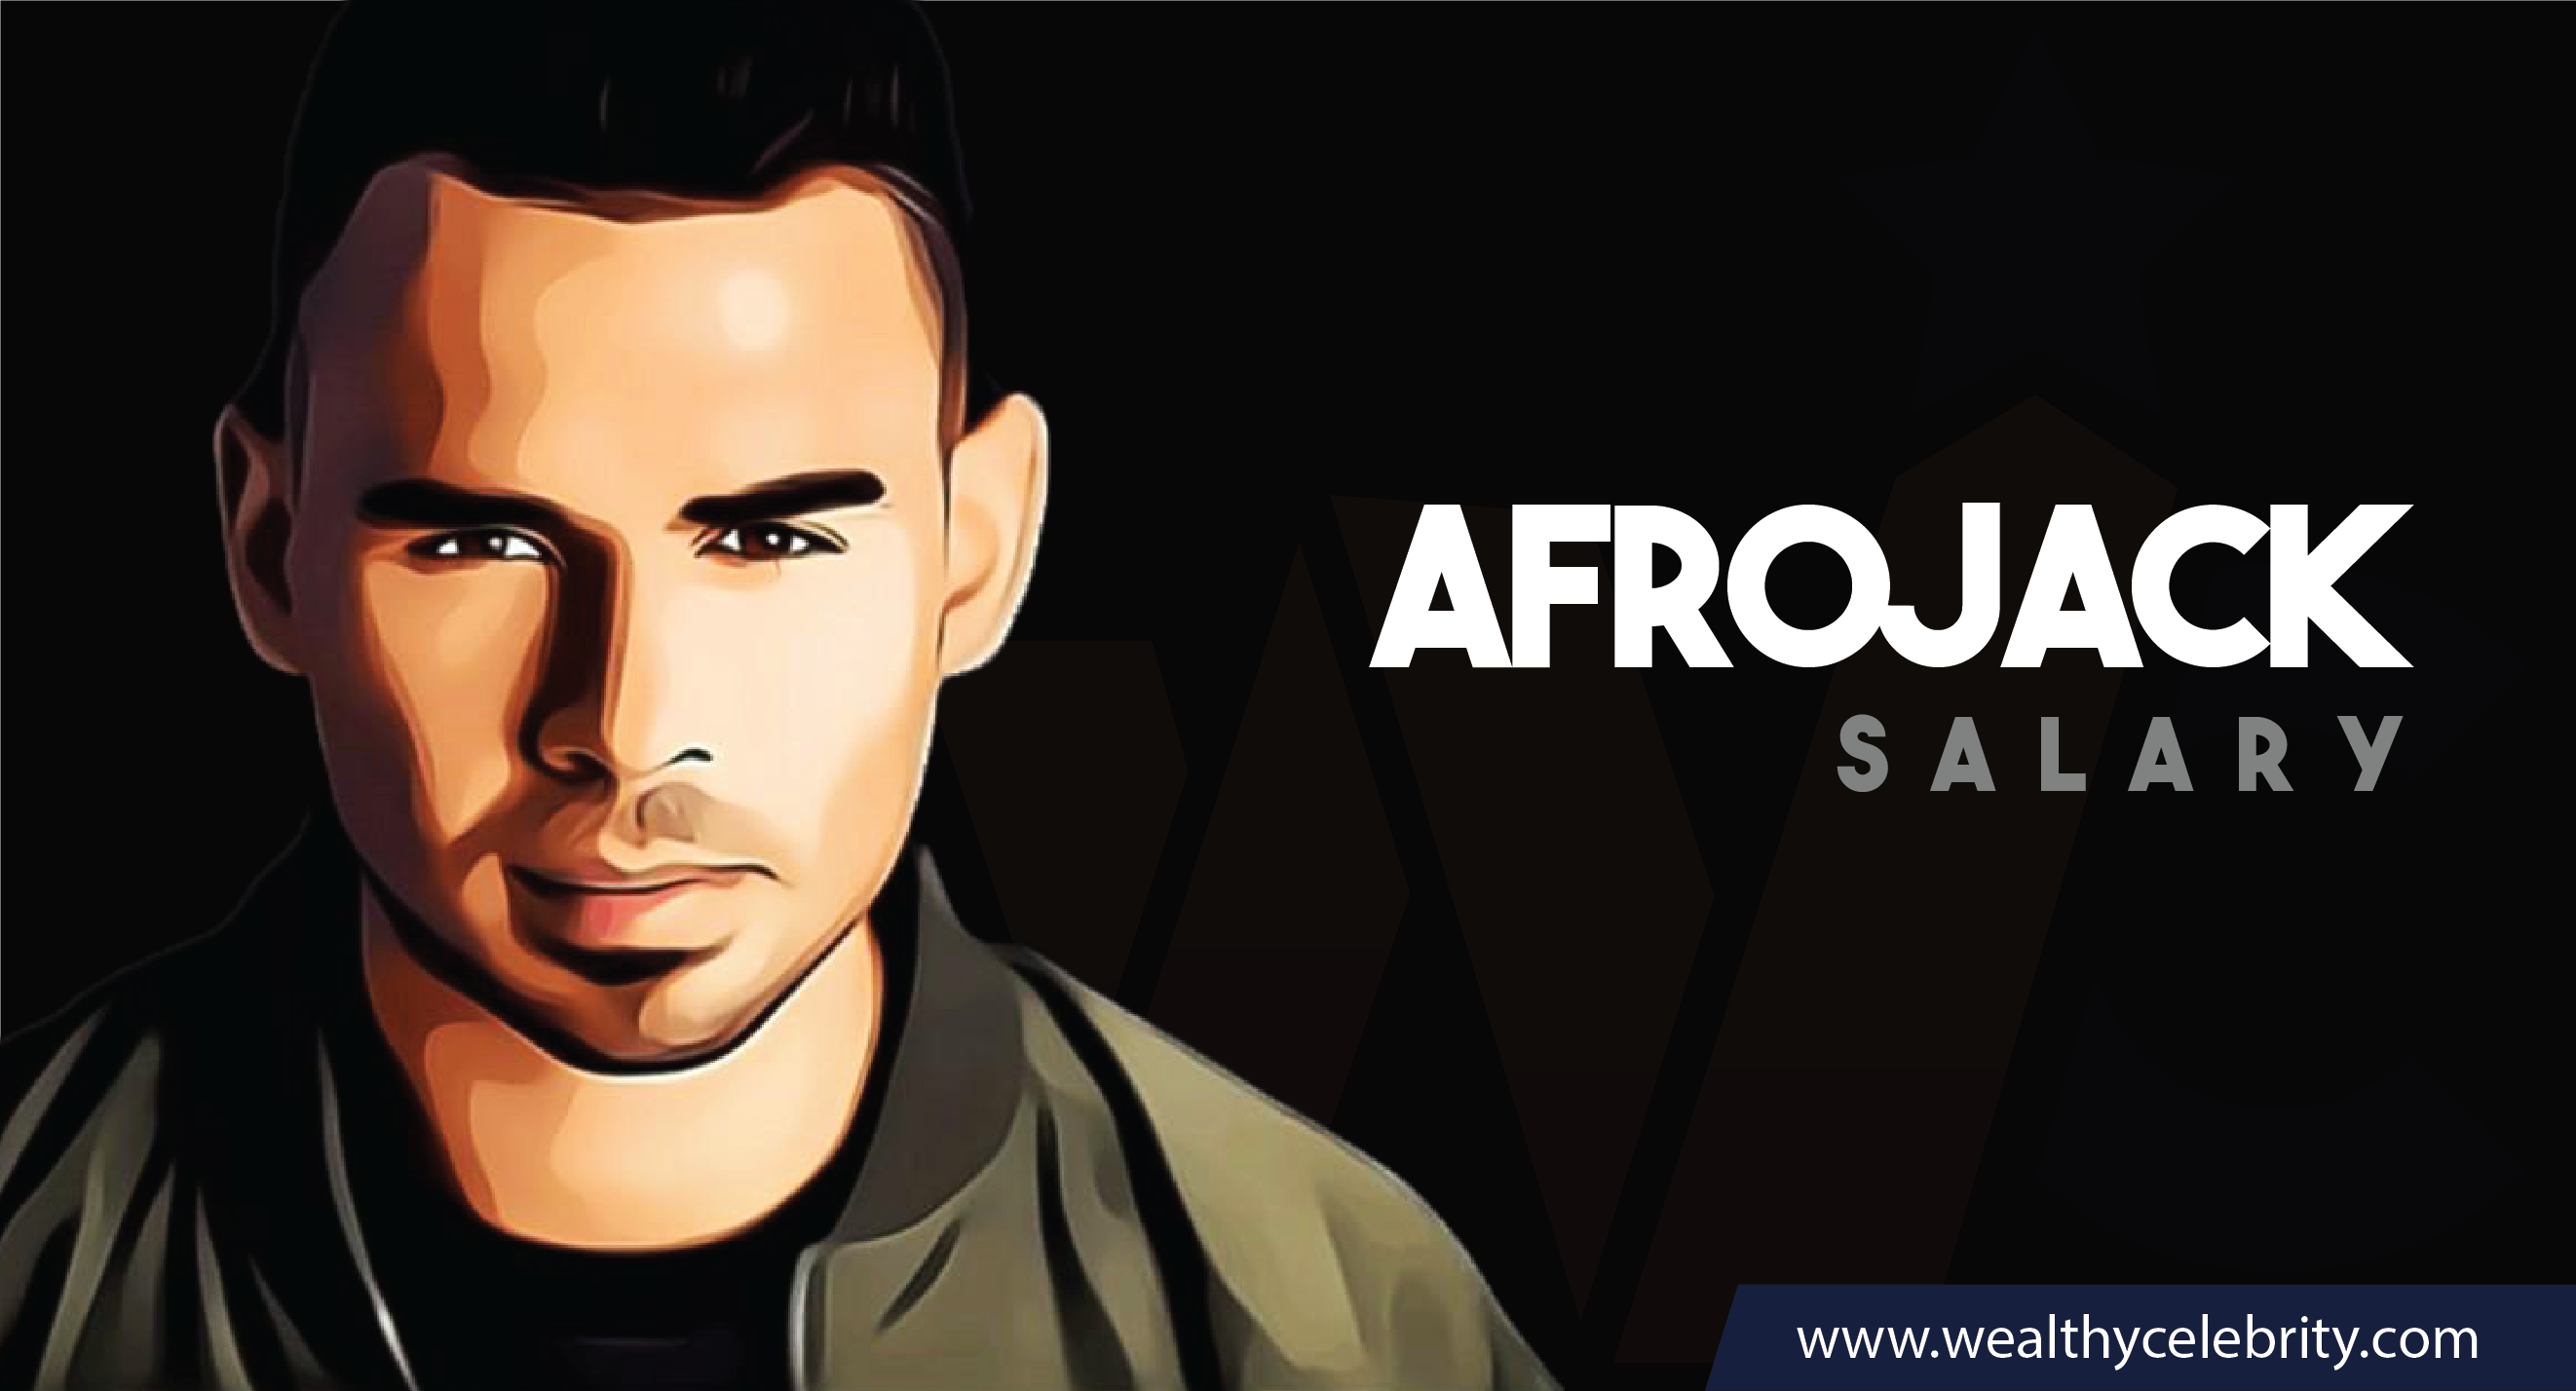 AfroJack DJ - Current Salary Net Worth